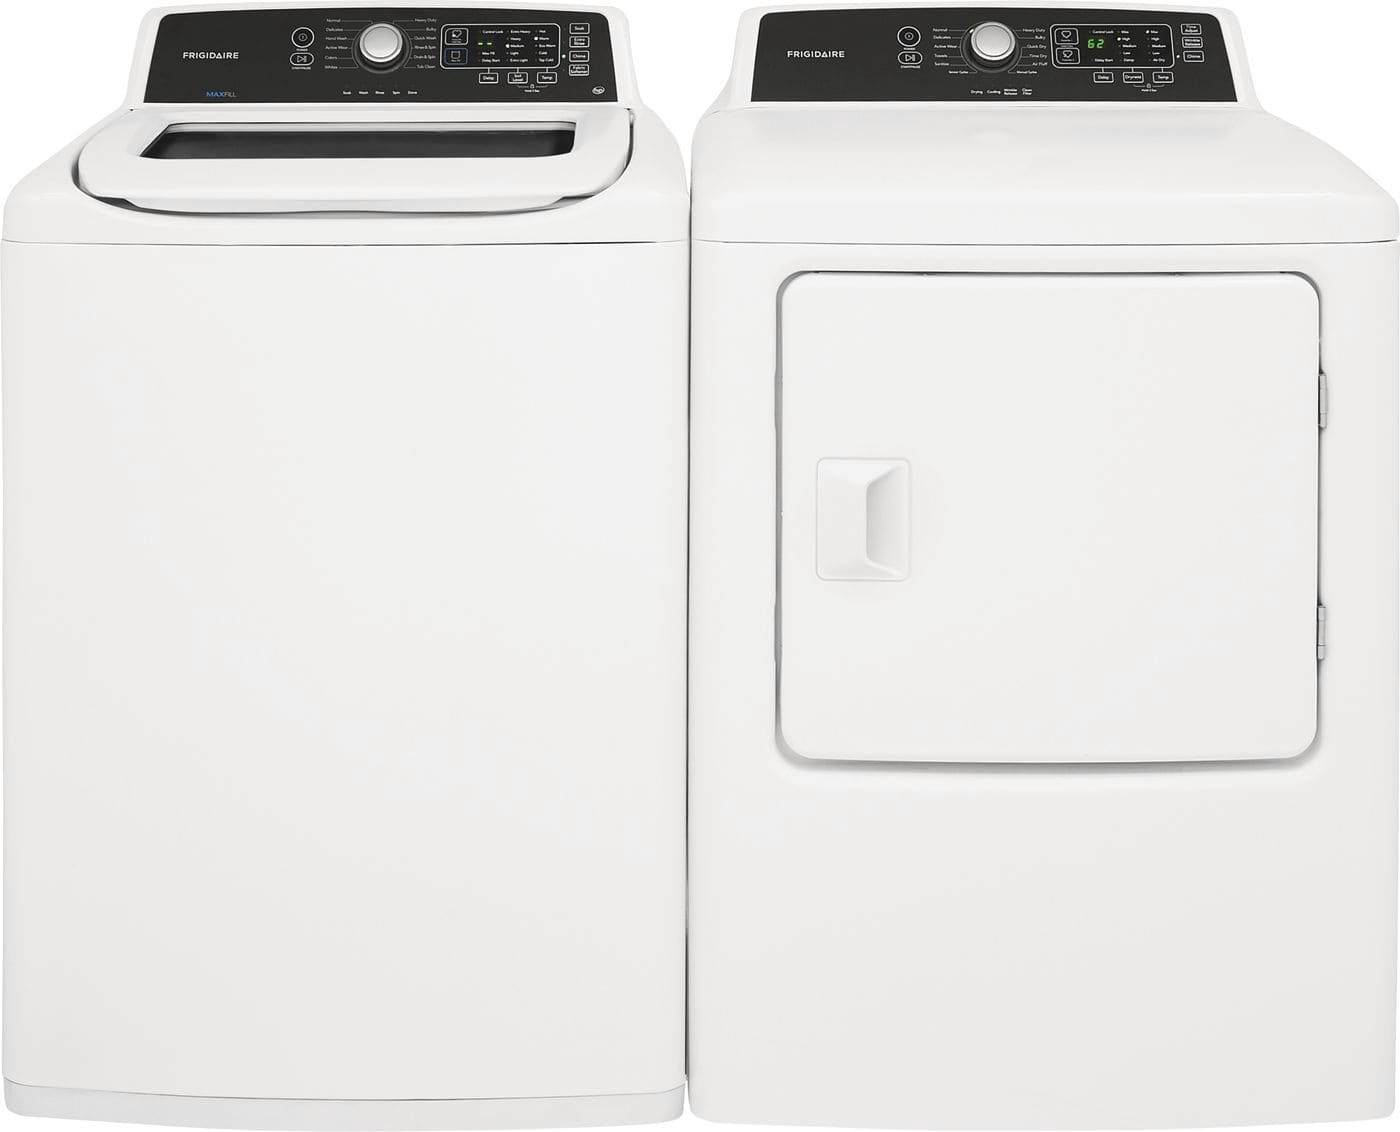 Model: FFTW4120SW | Frigidaire 4.1 Cu. Ft. High Efficiency Top Load Washer